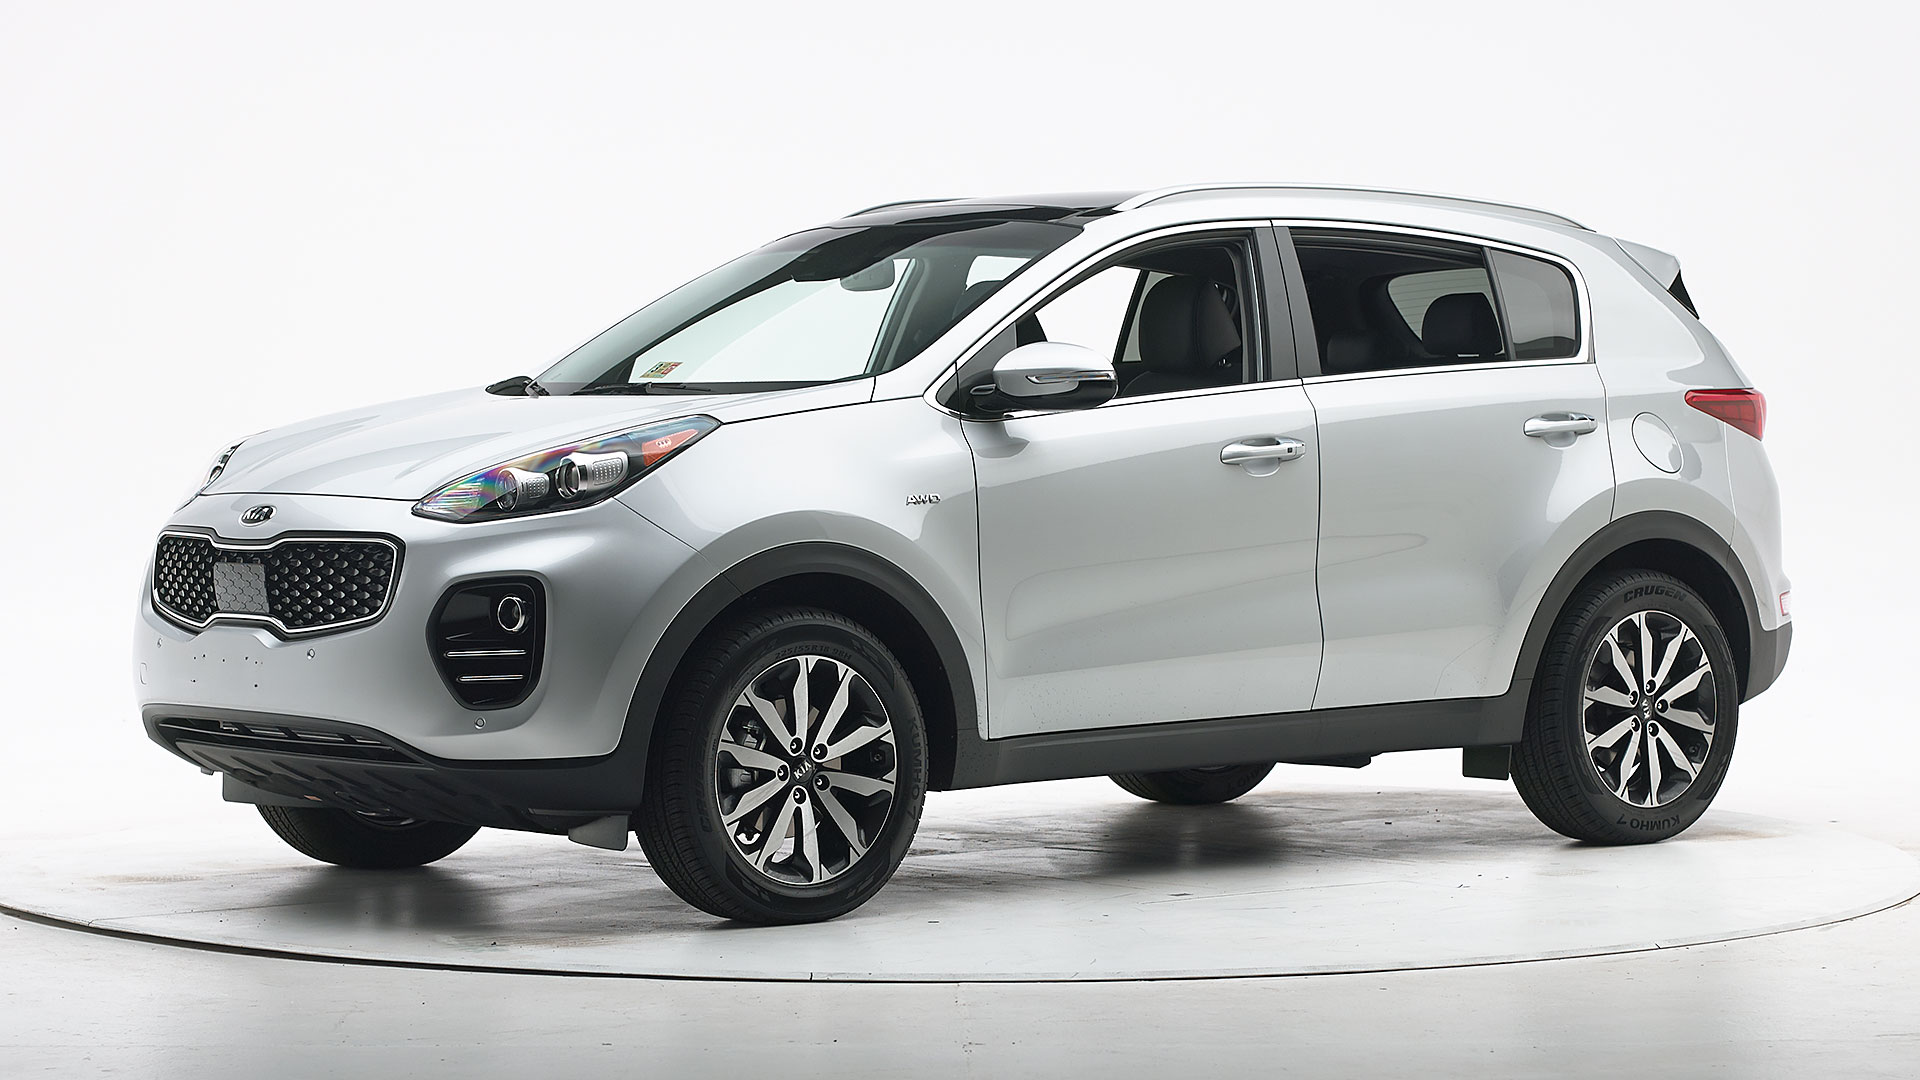 kia sportage safety rating suv door pick its crashworthiness iihs earns proves award crash test autoevolution colors